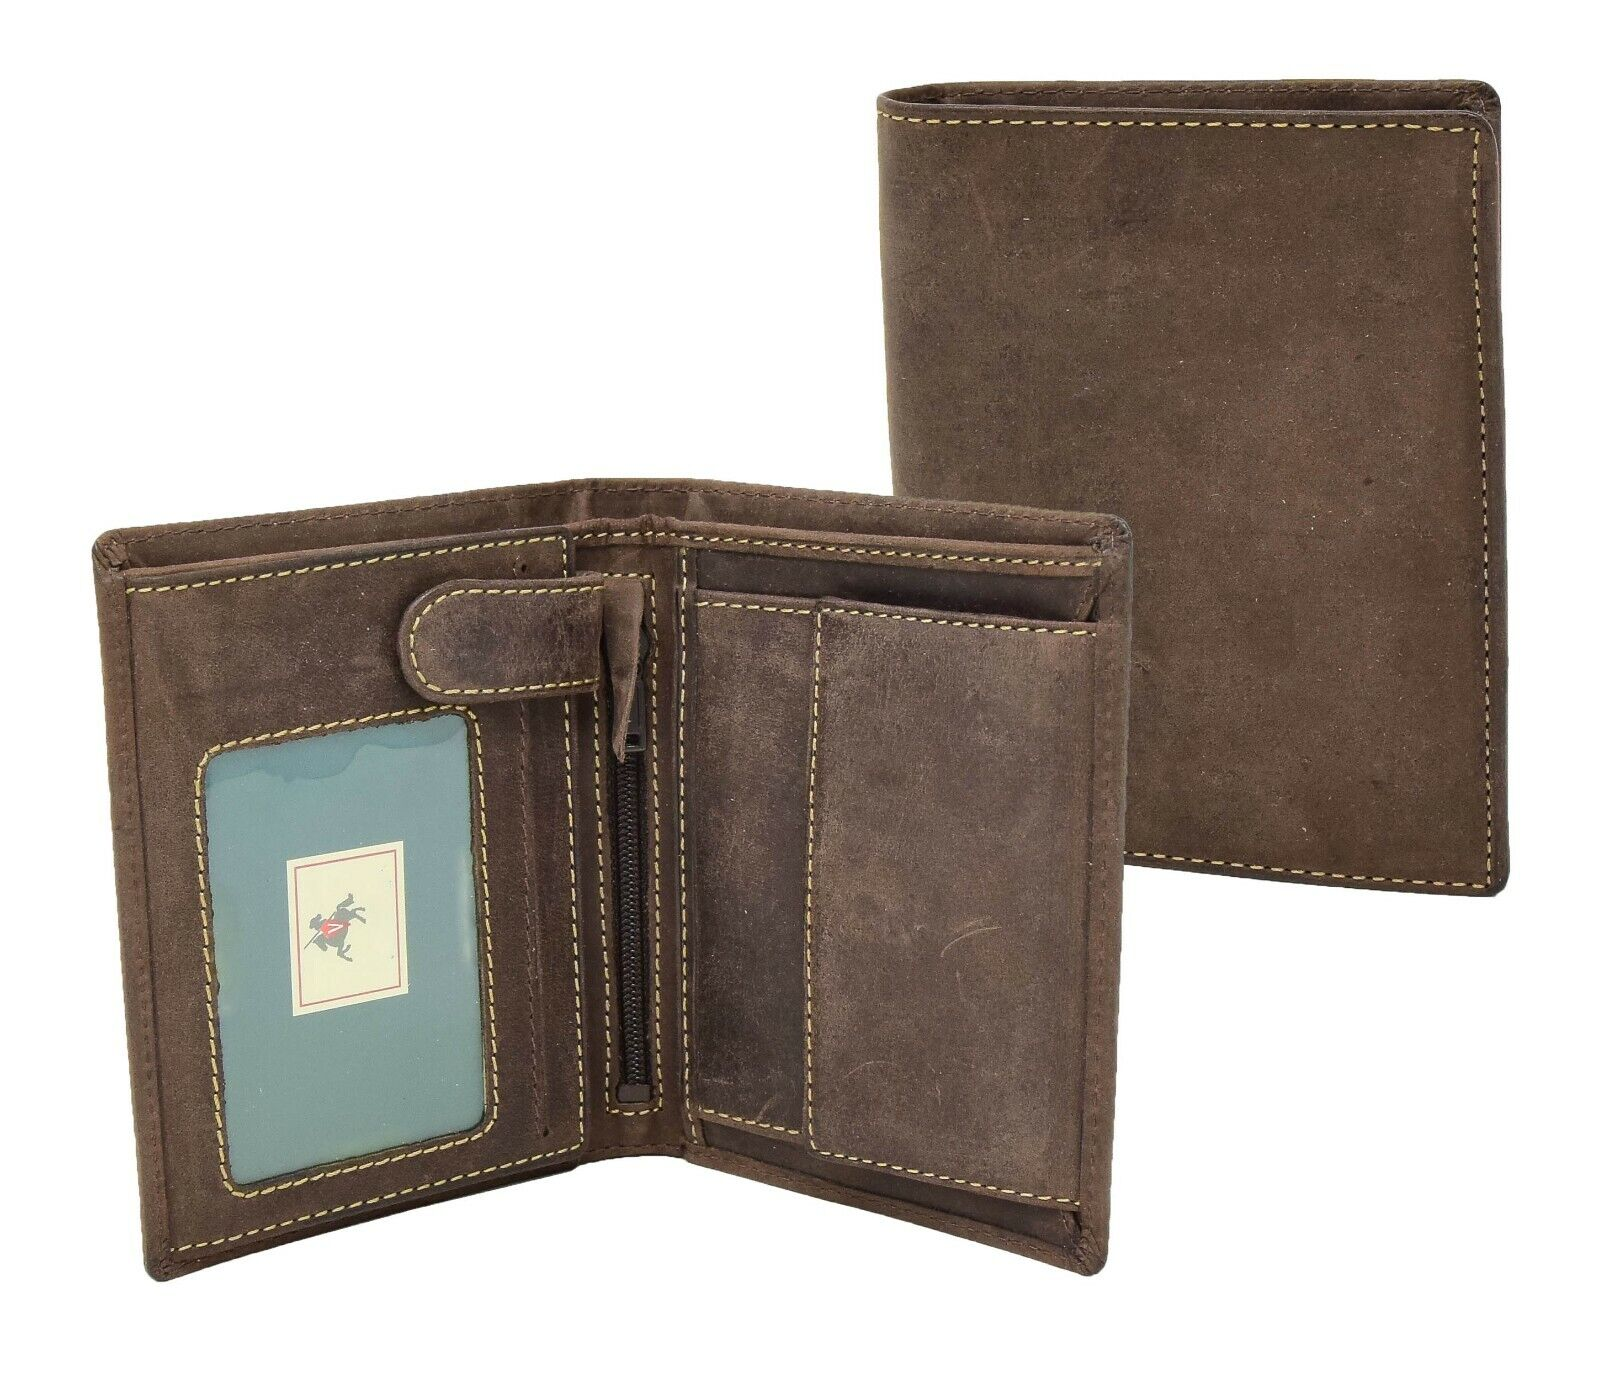 Mens Luxury Brown Distressed Leather Wallet ID Coins Credit Cards Notes Holder